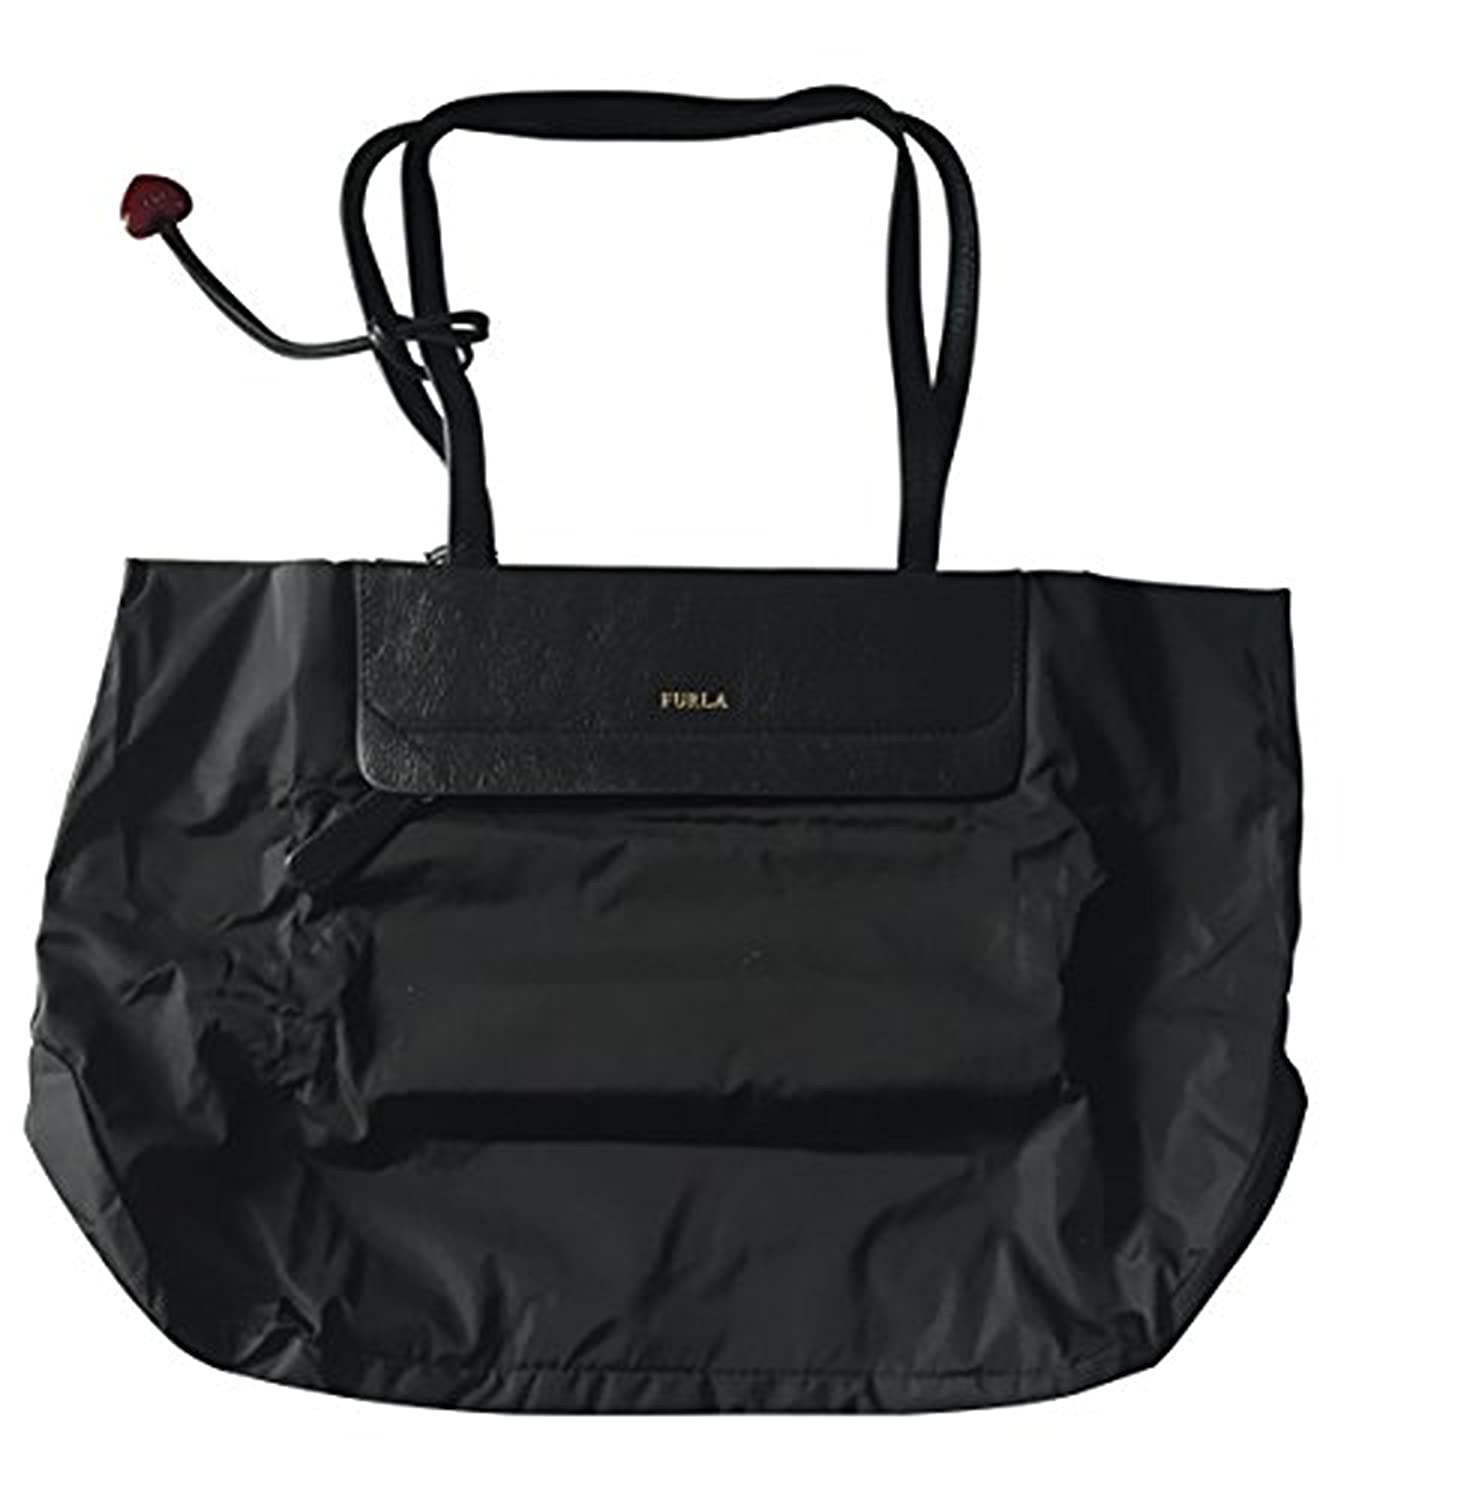 4ea69e0c980 Furla In-flight Tote Bag, Foldable Shopper in Leather and Nylon, Black;  Dimensions: 39 x 25 x 13 cm - BINFBQ60S50G0QO60-O60-ONYX#TU: Amazon.co.uk:  Shoes & ...